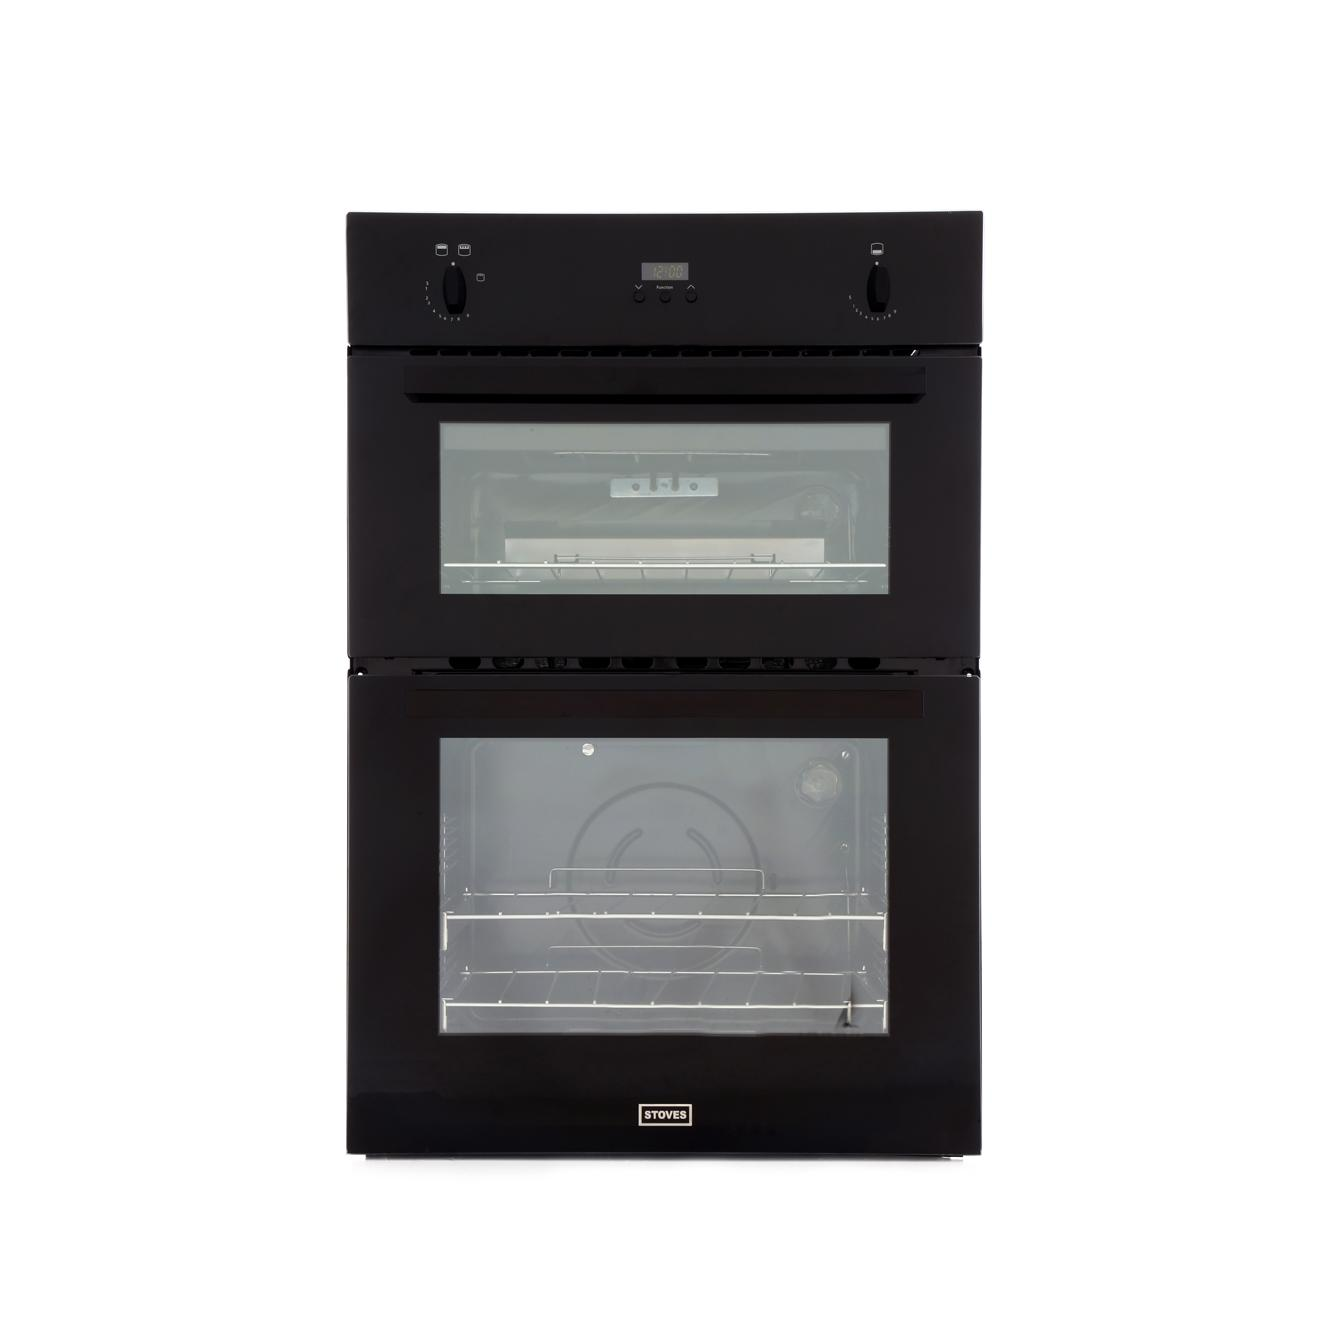 Stoves SGB900PS Black Double Built In Gas Oven